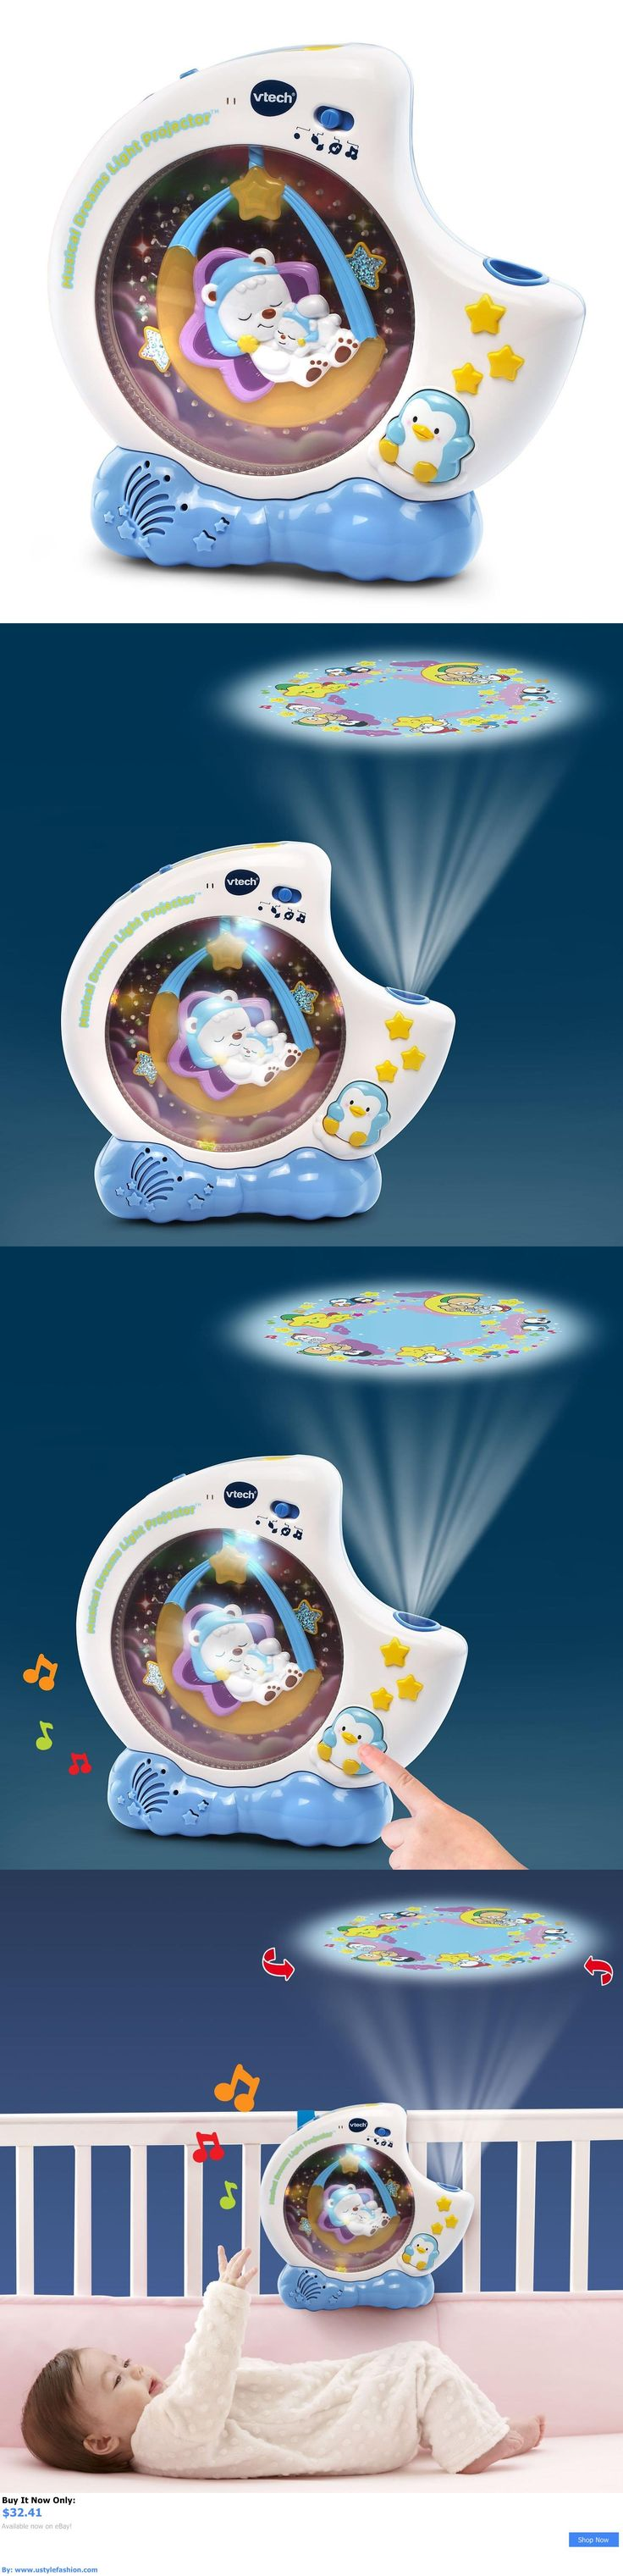 Crib Toys: Vtech Musical Dreams Light Projector BUY IT NOW ONLY: $32.41 #ustylefashionCribToys OR #ustylefashion